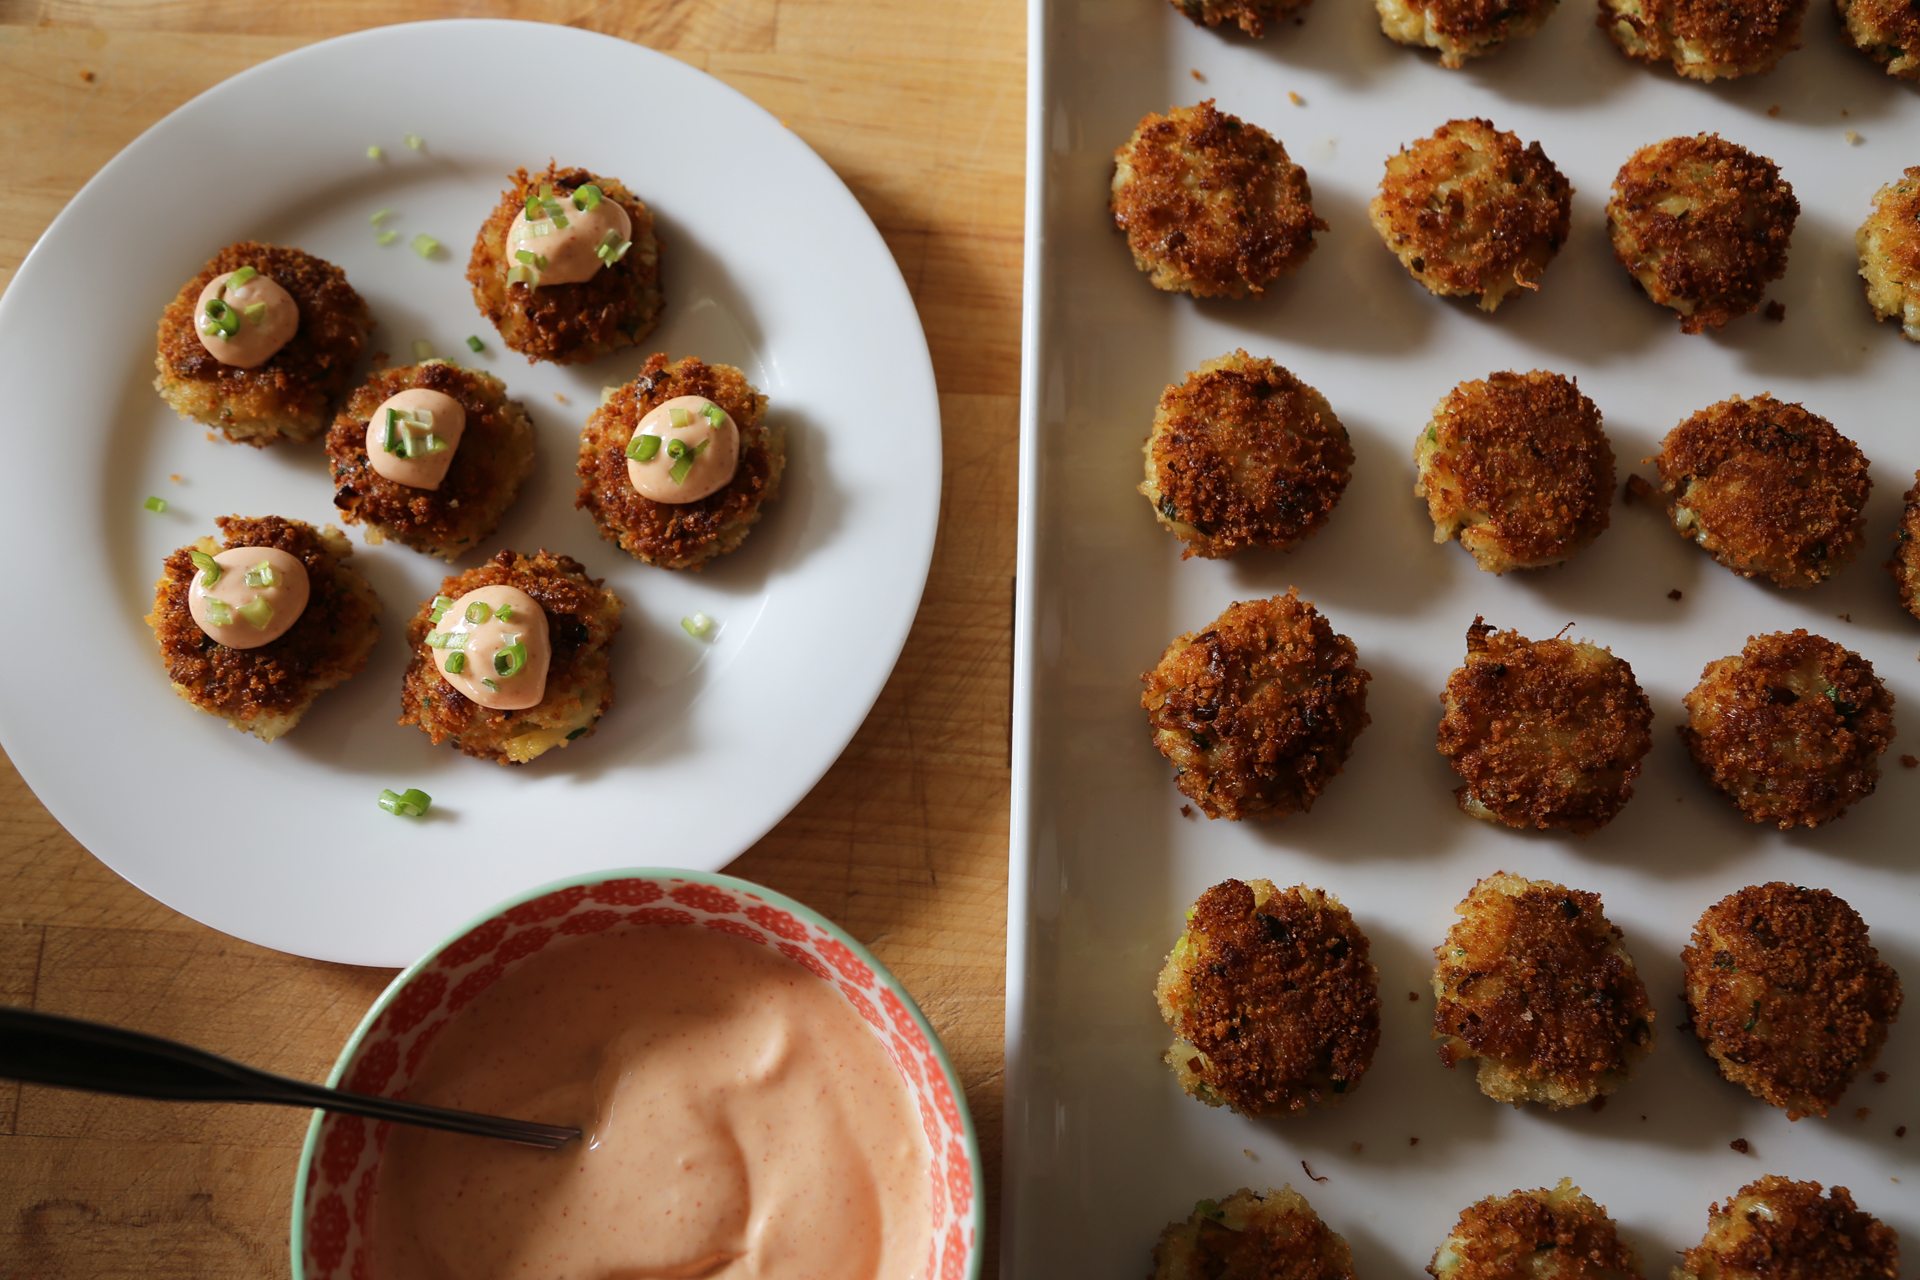 Serve at once with the spicy mayo alongside, or, for passed hors d'oeuvres, place the crab cakes on a platter, top with a little dollop of mayo and a sprinkle of green onion.